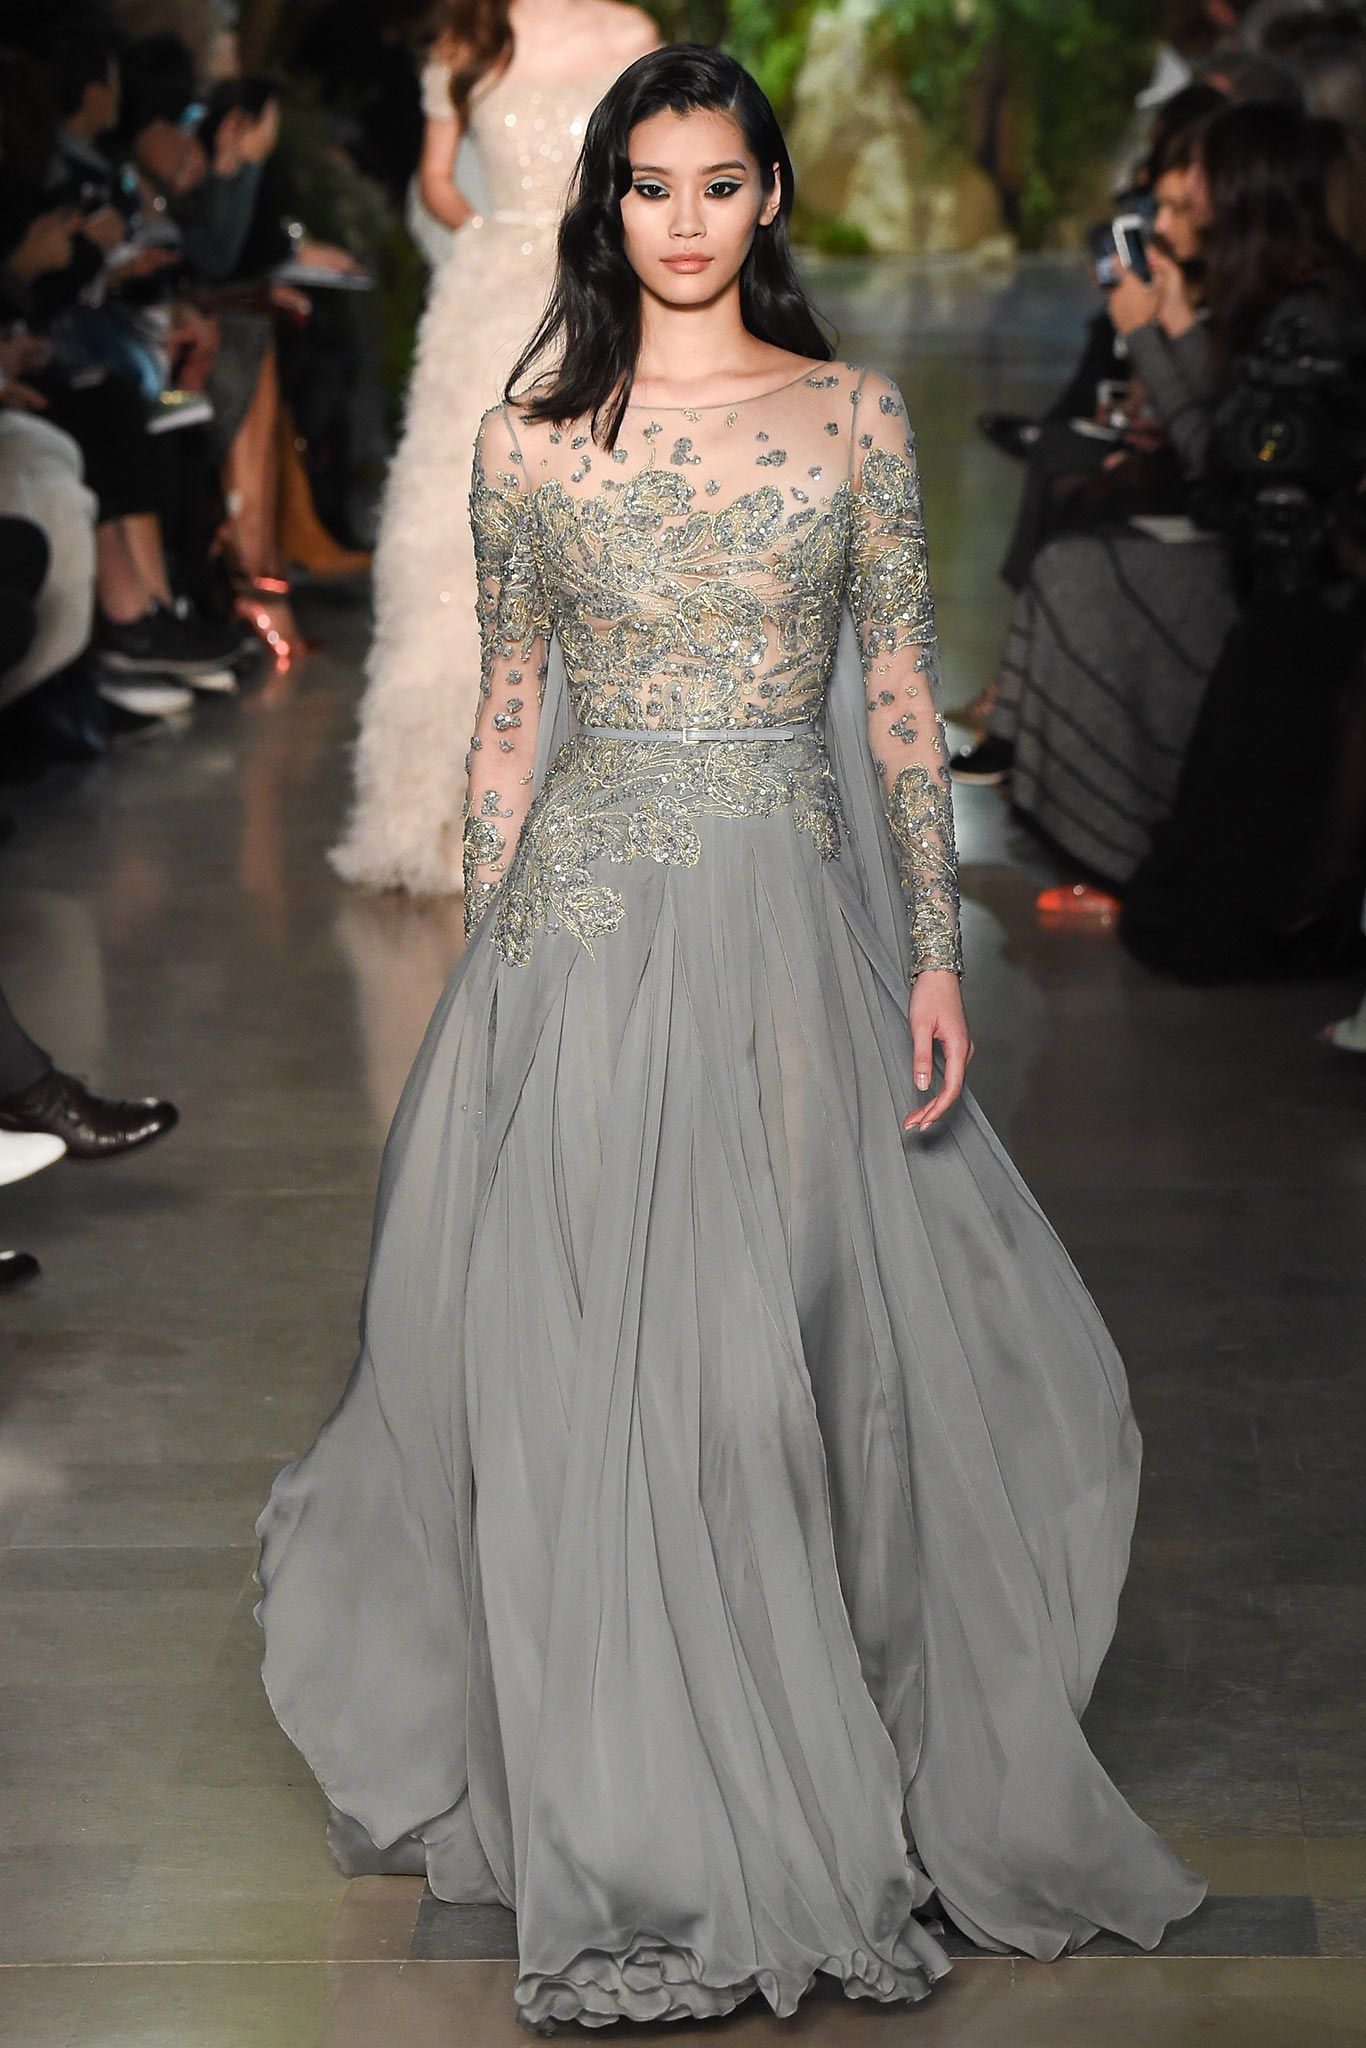 Elie saab spring couture fashion show elie saab spring and